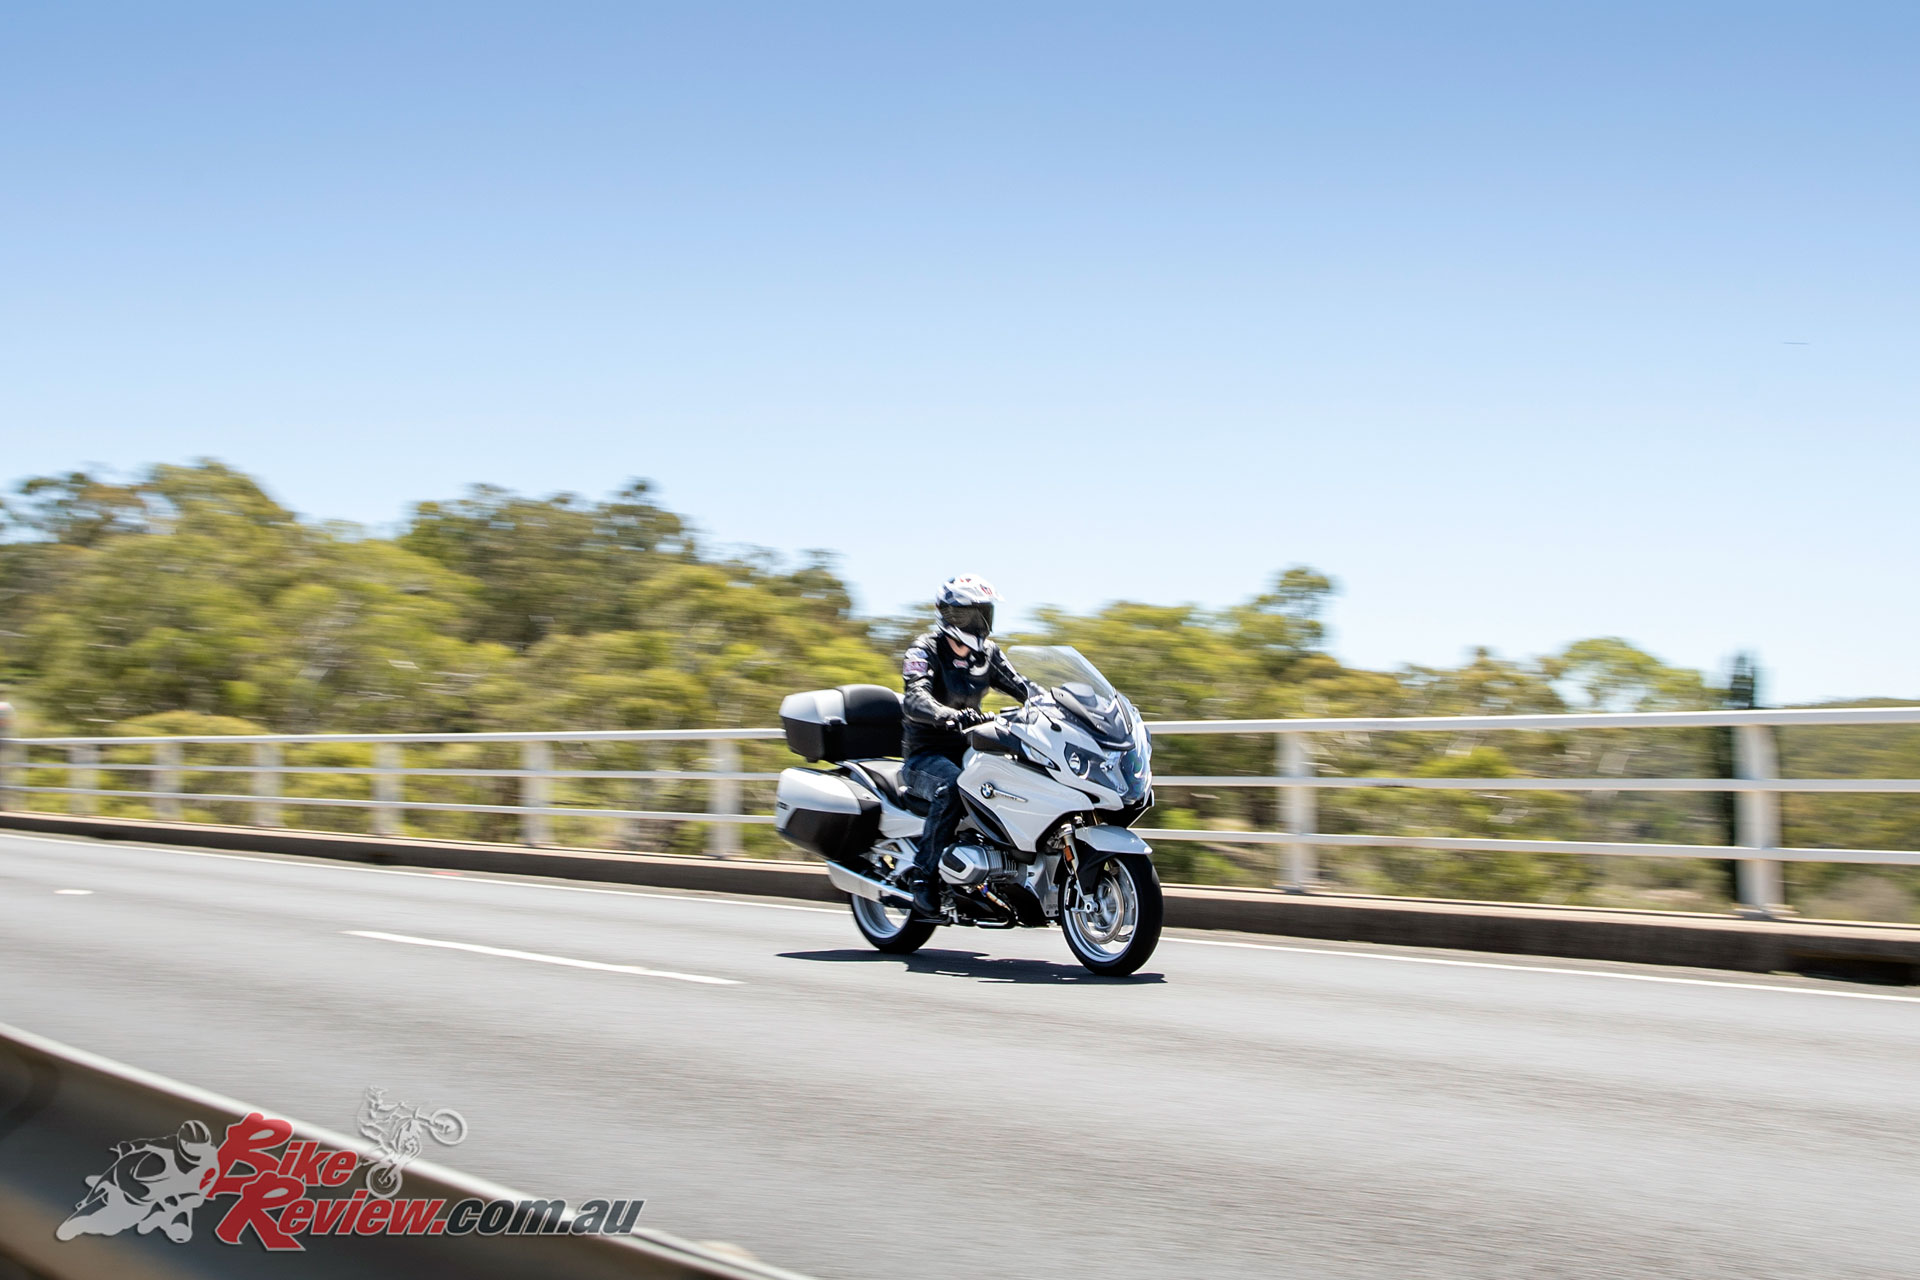 The R 1250 RT also features the Comfort, Touring and Dynamic packages as standard for a long list of standard inclusions